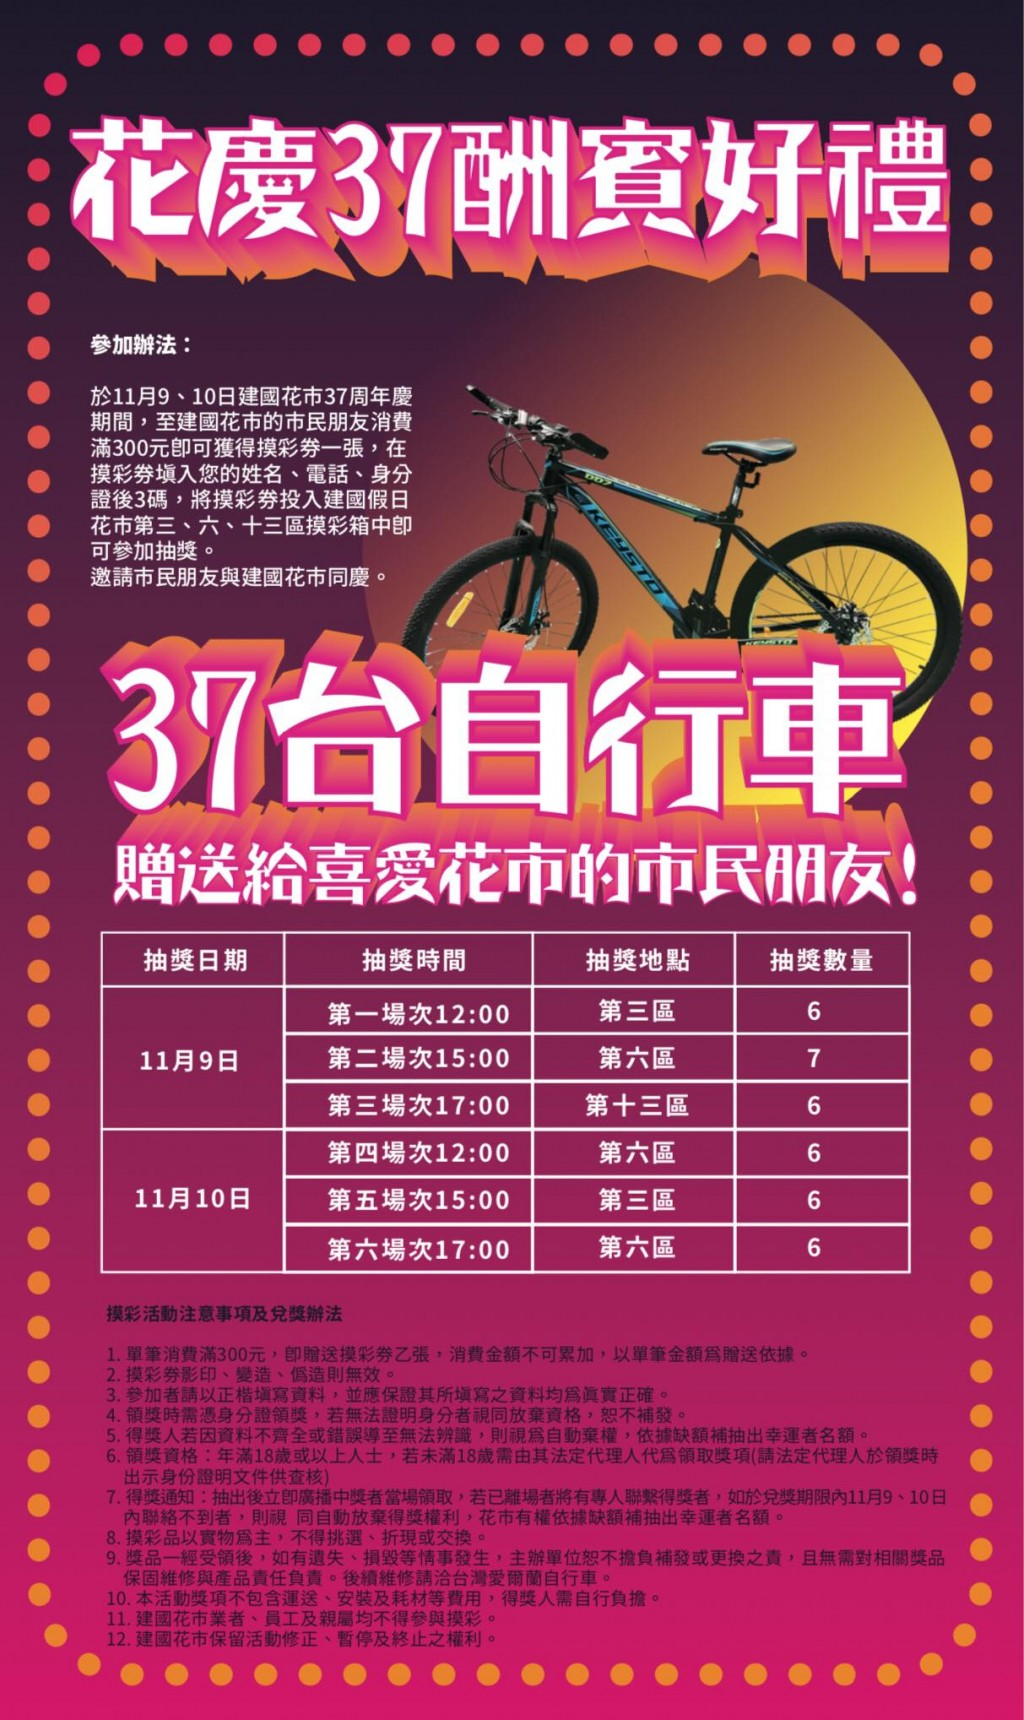 Taipei Flower Market hosts bicycle giveaway